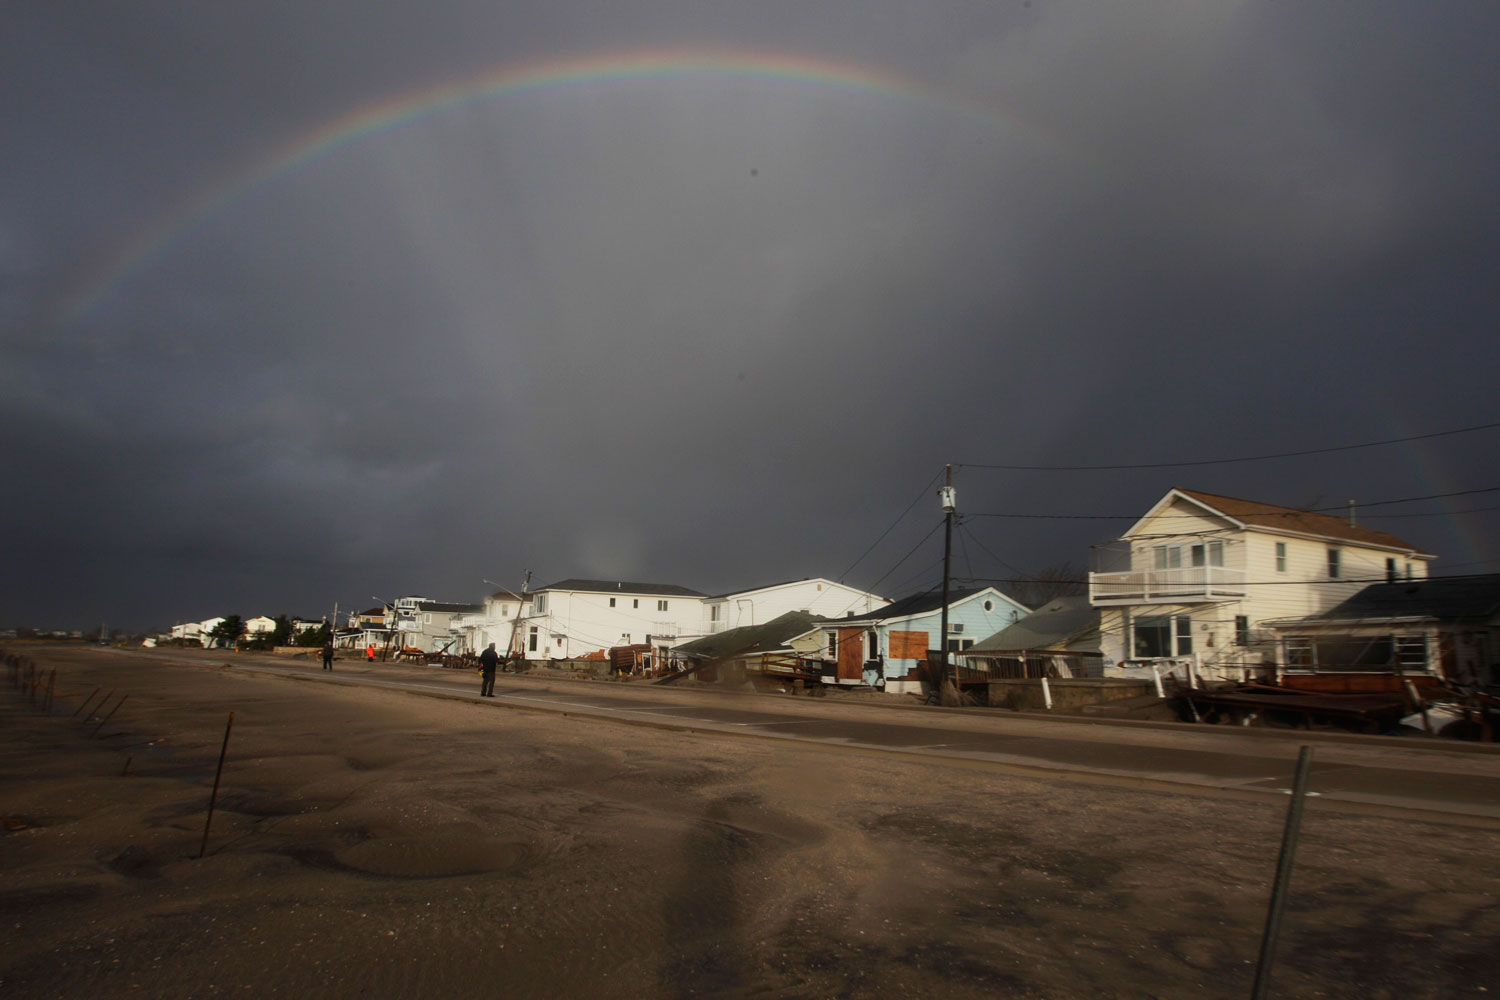 Hurricane Sandy Recovery                               Oct. 30, 2012. A rainbow forms over Breezy Point, Queens, in the aftermath of superstorm Sandy in New York. Fire destroyed scores houses in the flooded neighborhood.